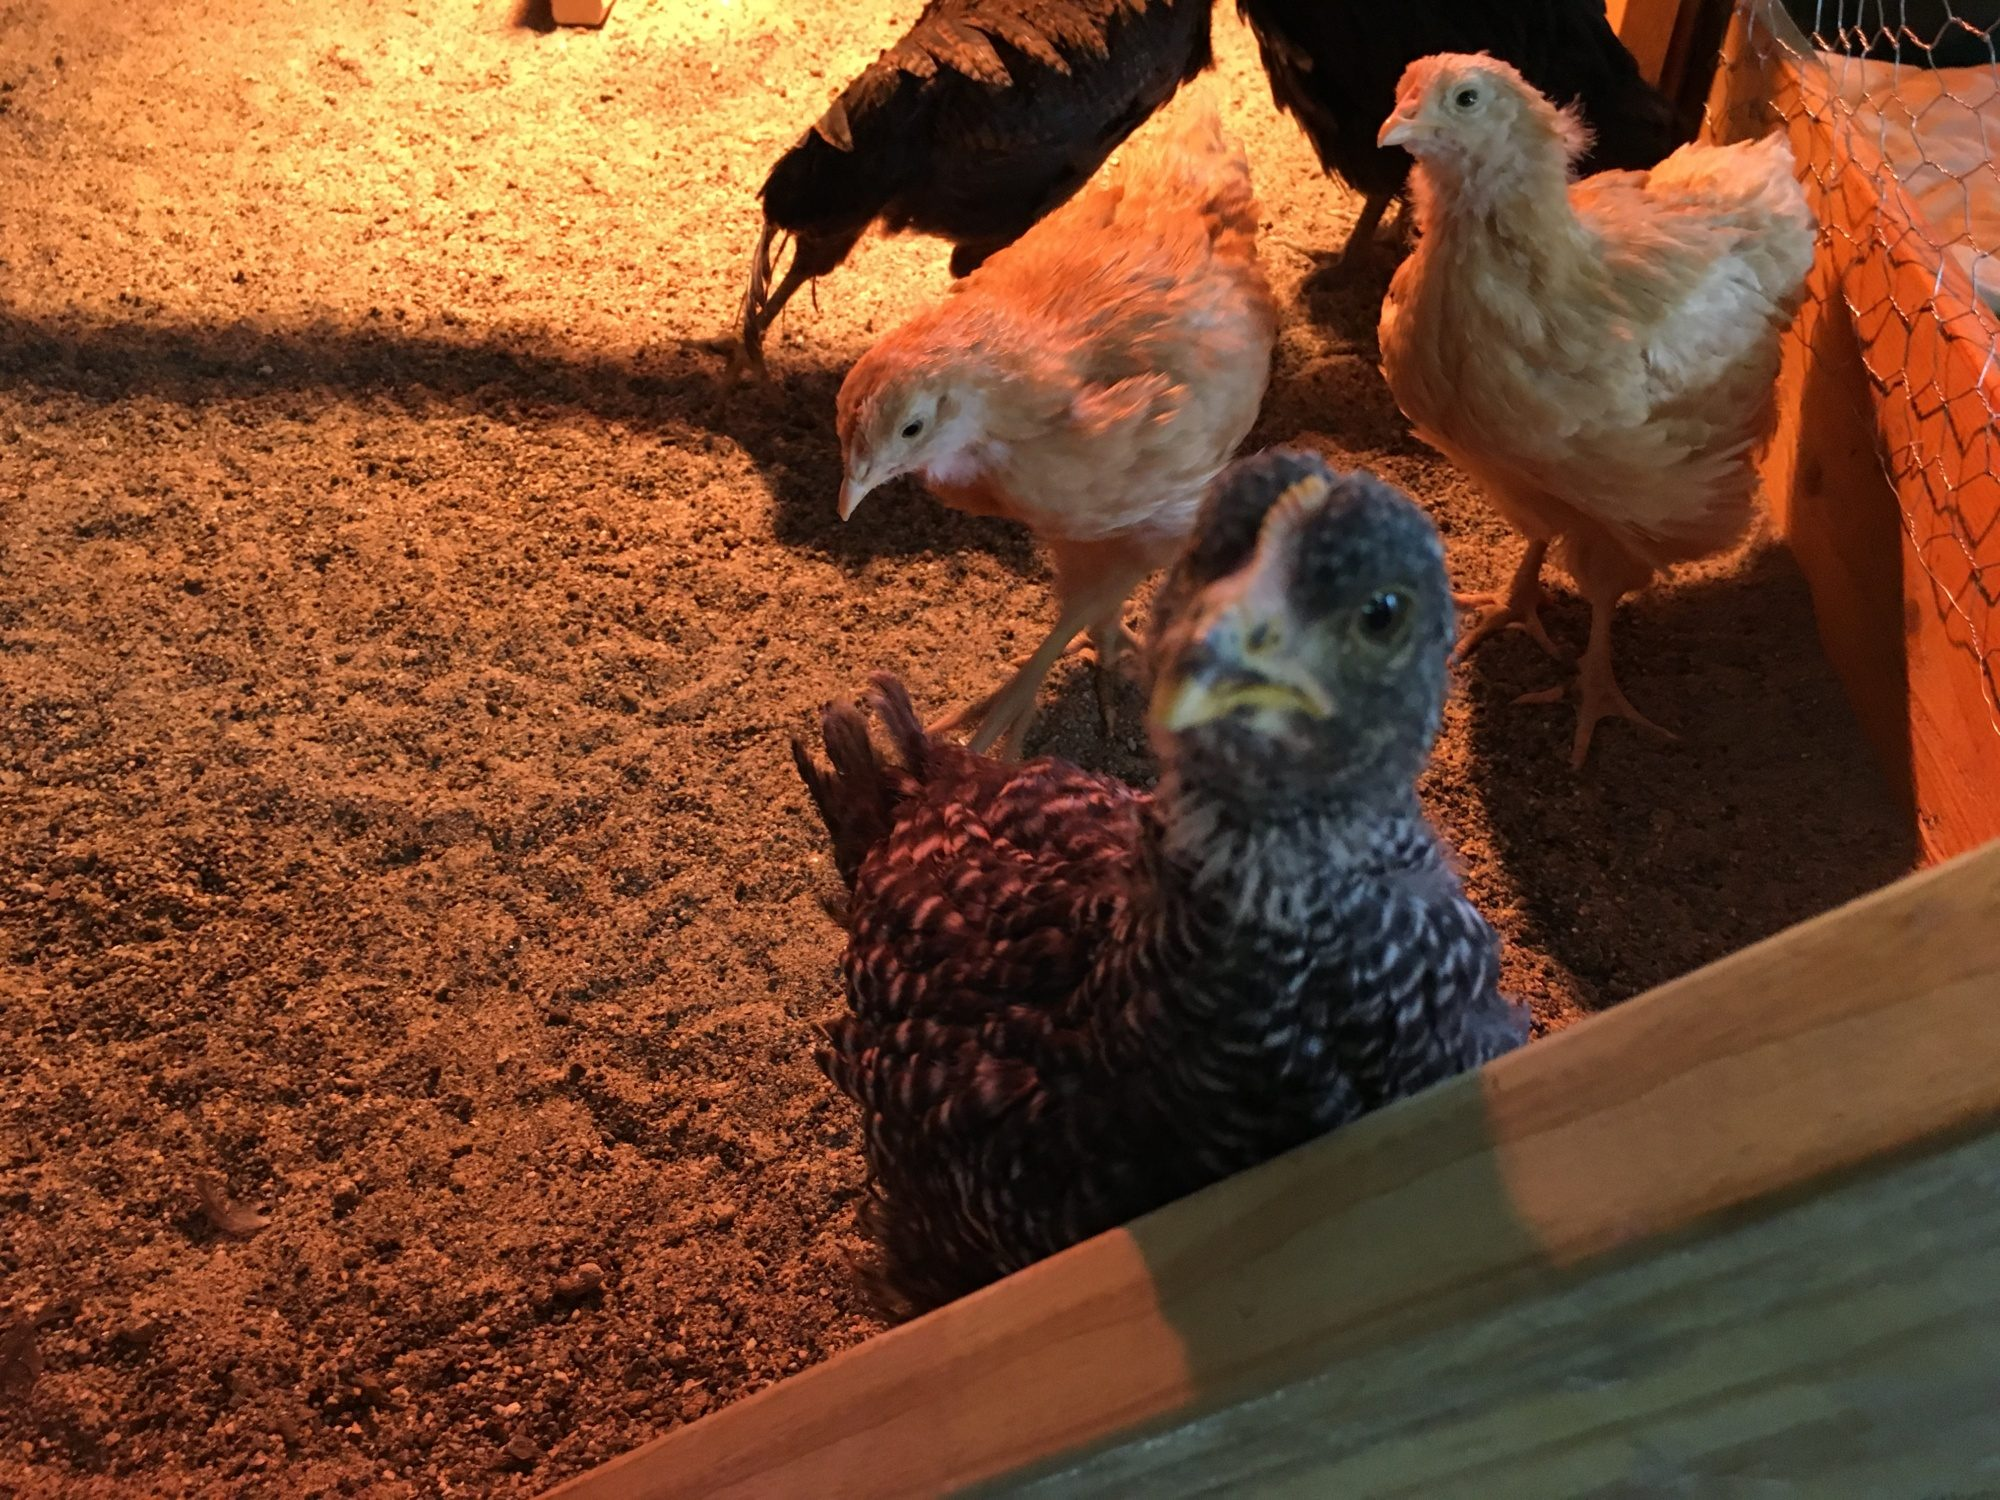 Chickens at Sweet Pea's Rustic Roost